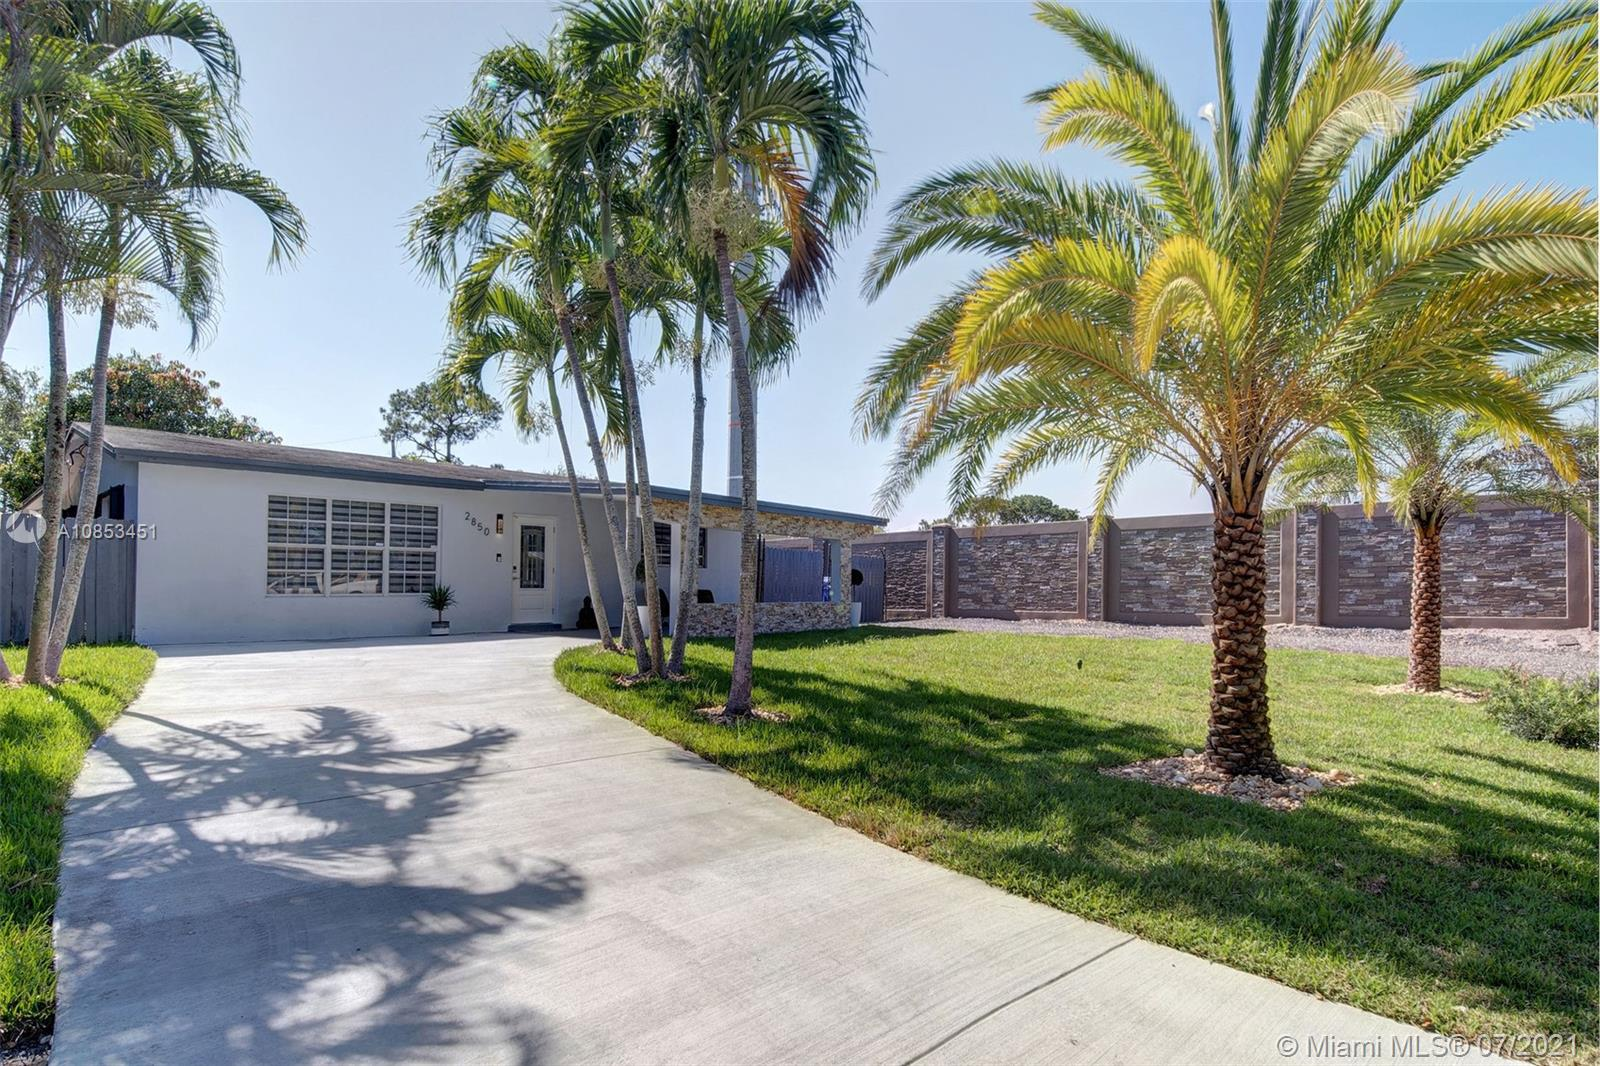 2850 N 62nd Ave  For Sale A10853451, FL